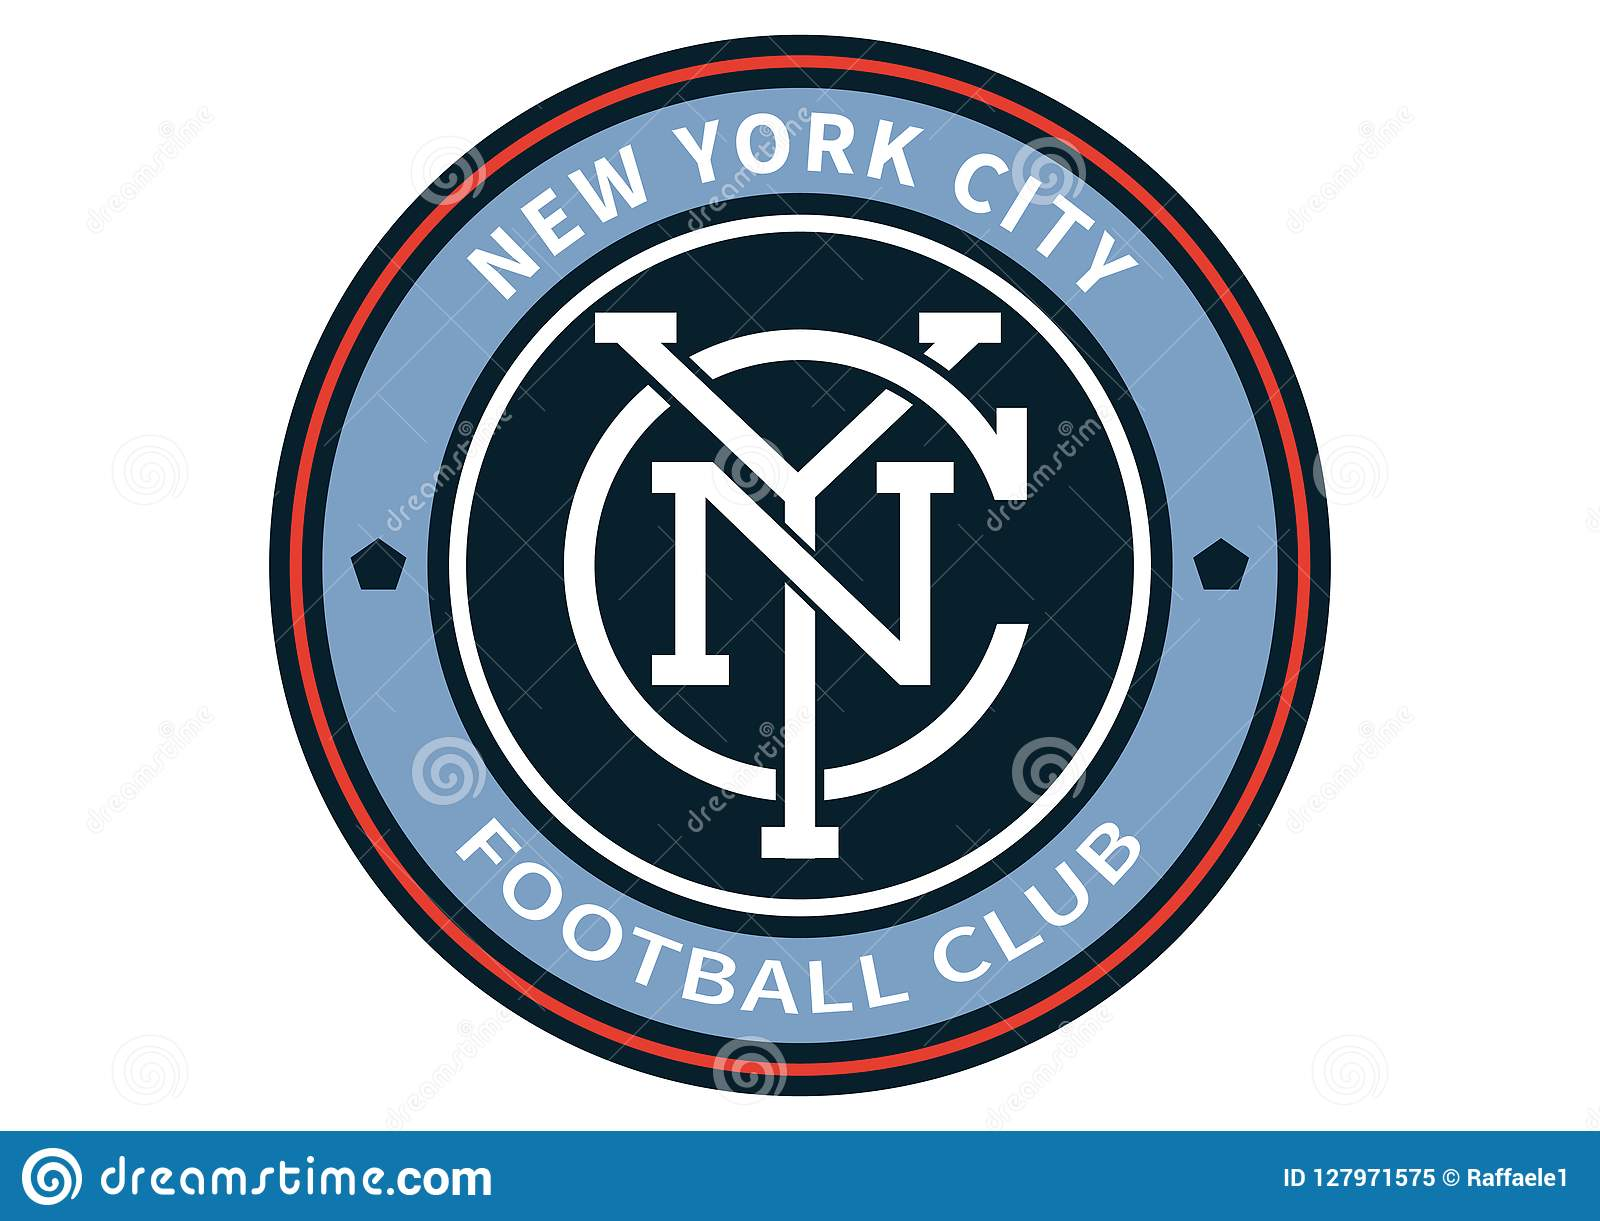 New York City Fc Logo Editorial Image Illustration Of Soccer